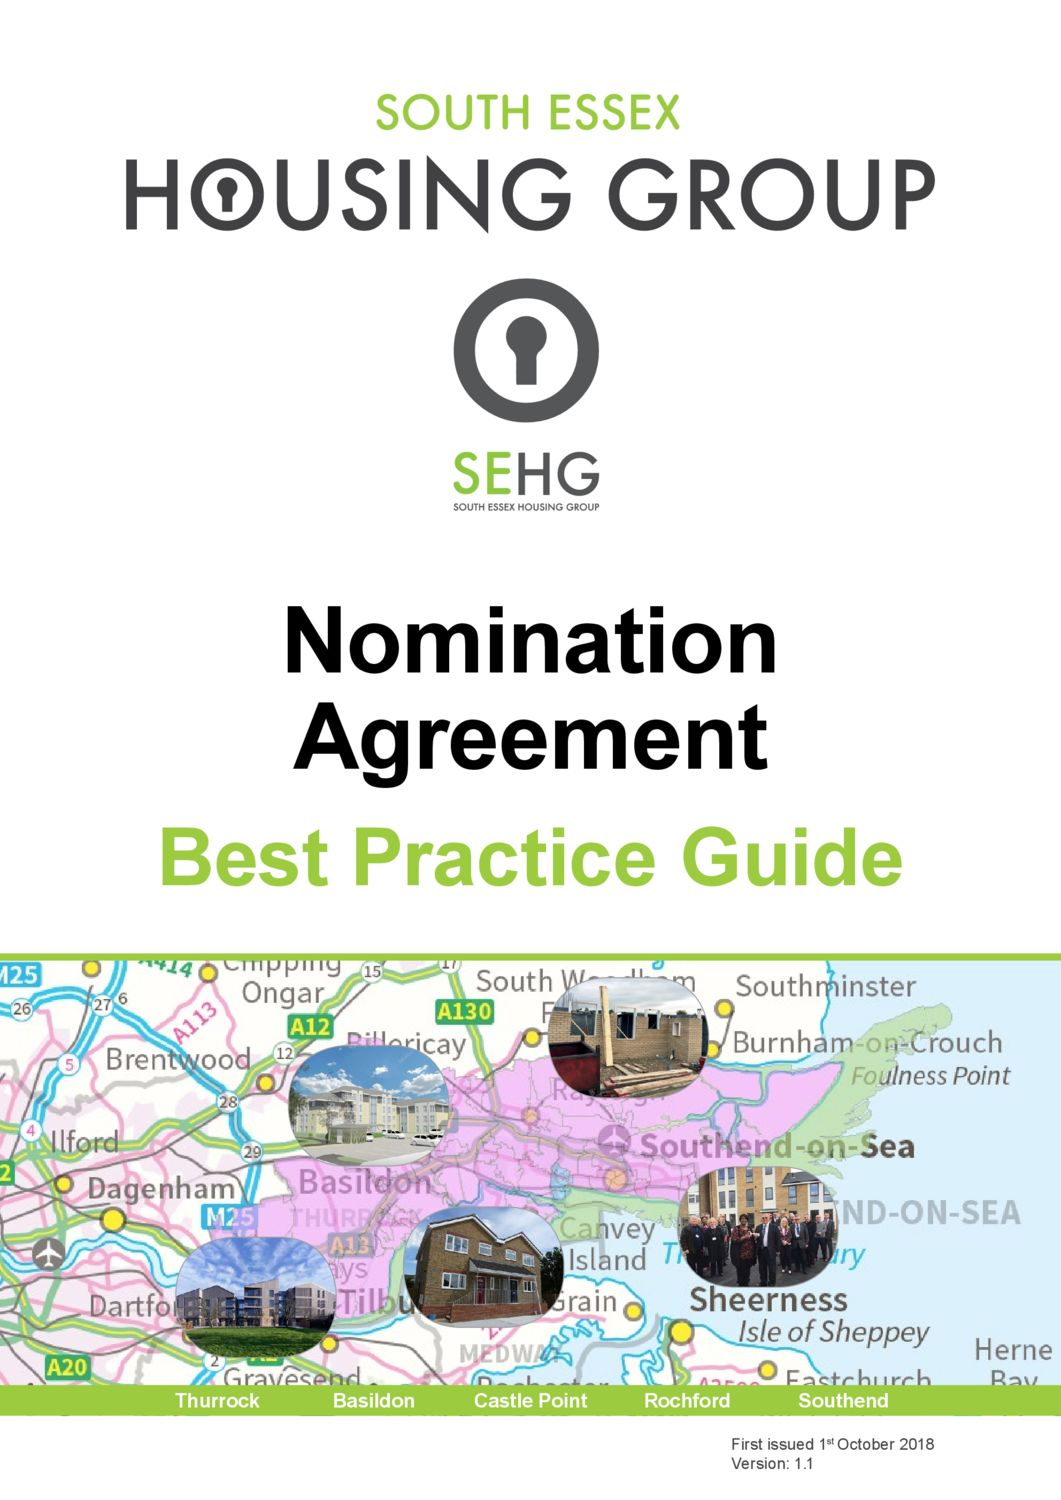 Nomination Agreement Best Practice Guide